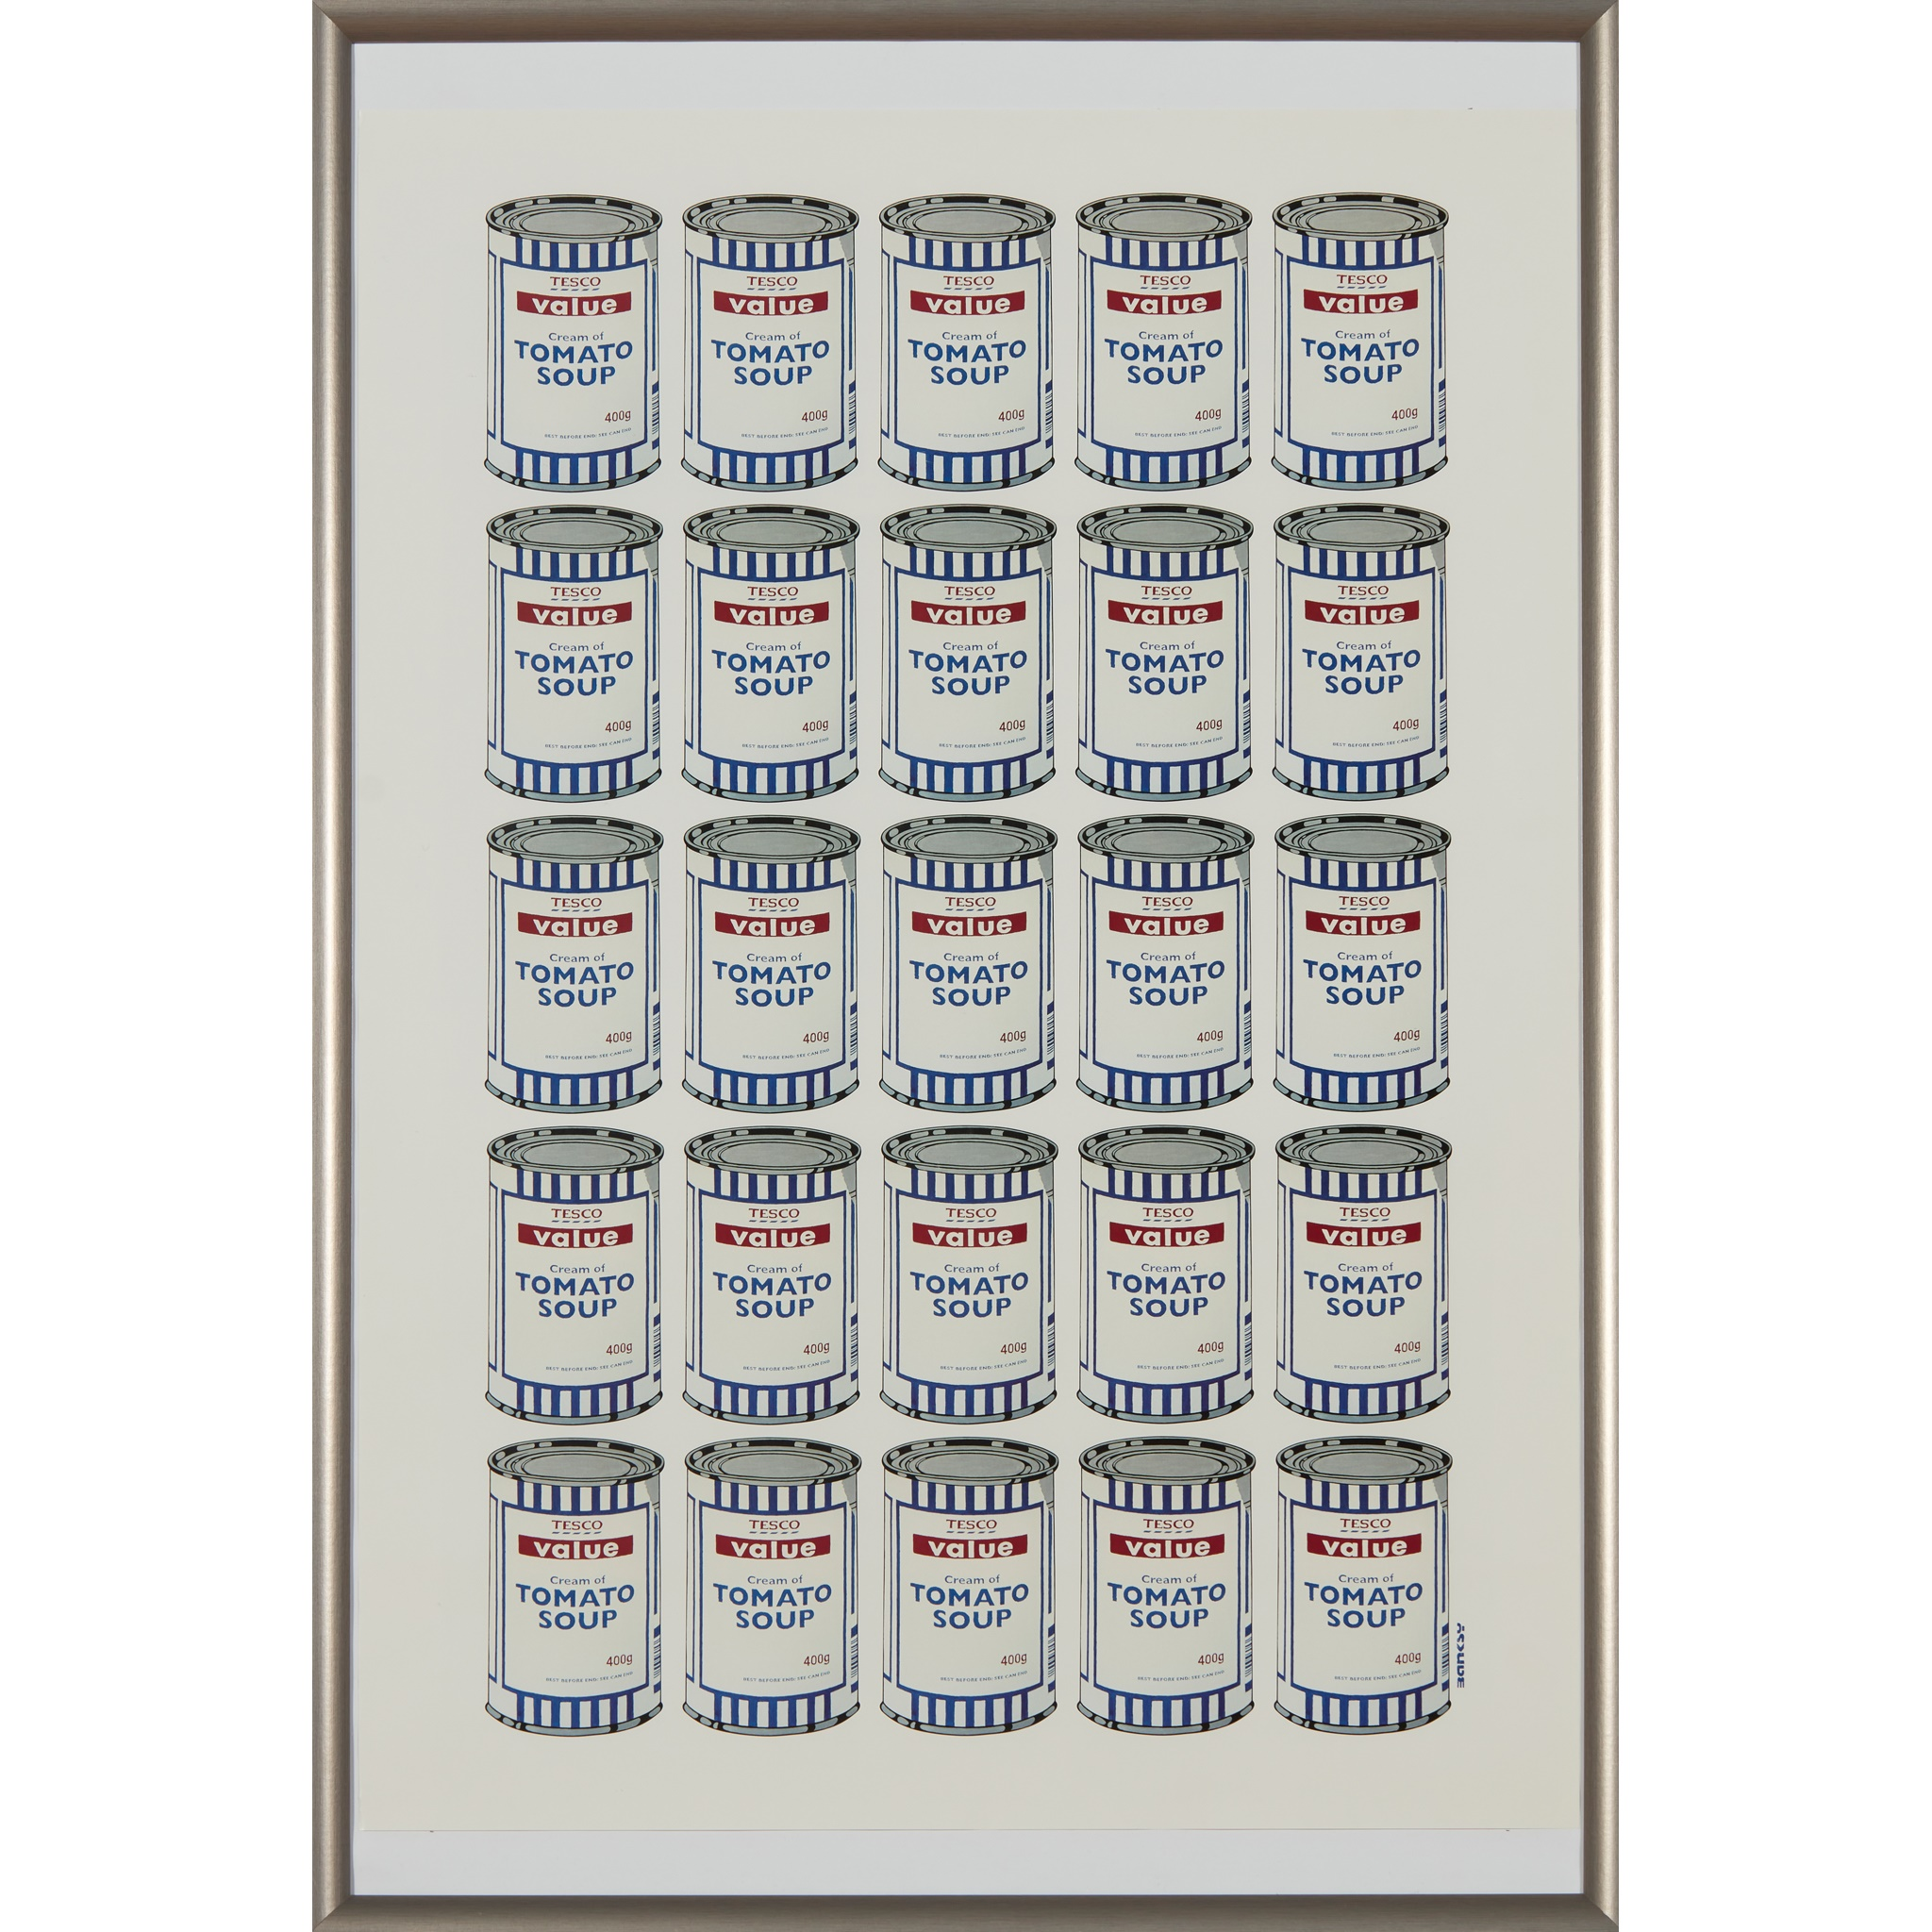 § BANKSY (BRITISH 1974-) SOUP CANS POSTER - 2006 - Image 2 of 3